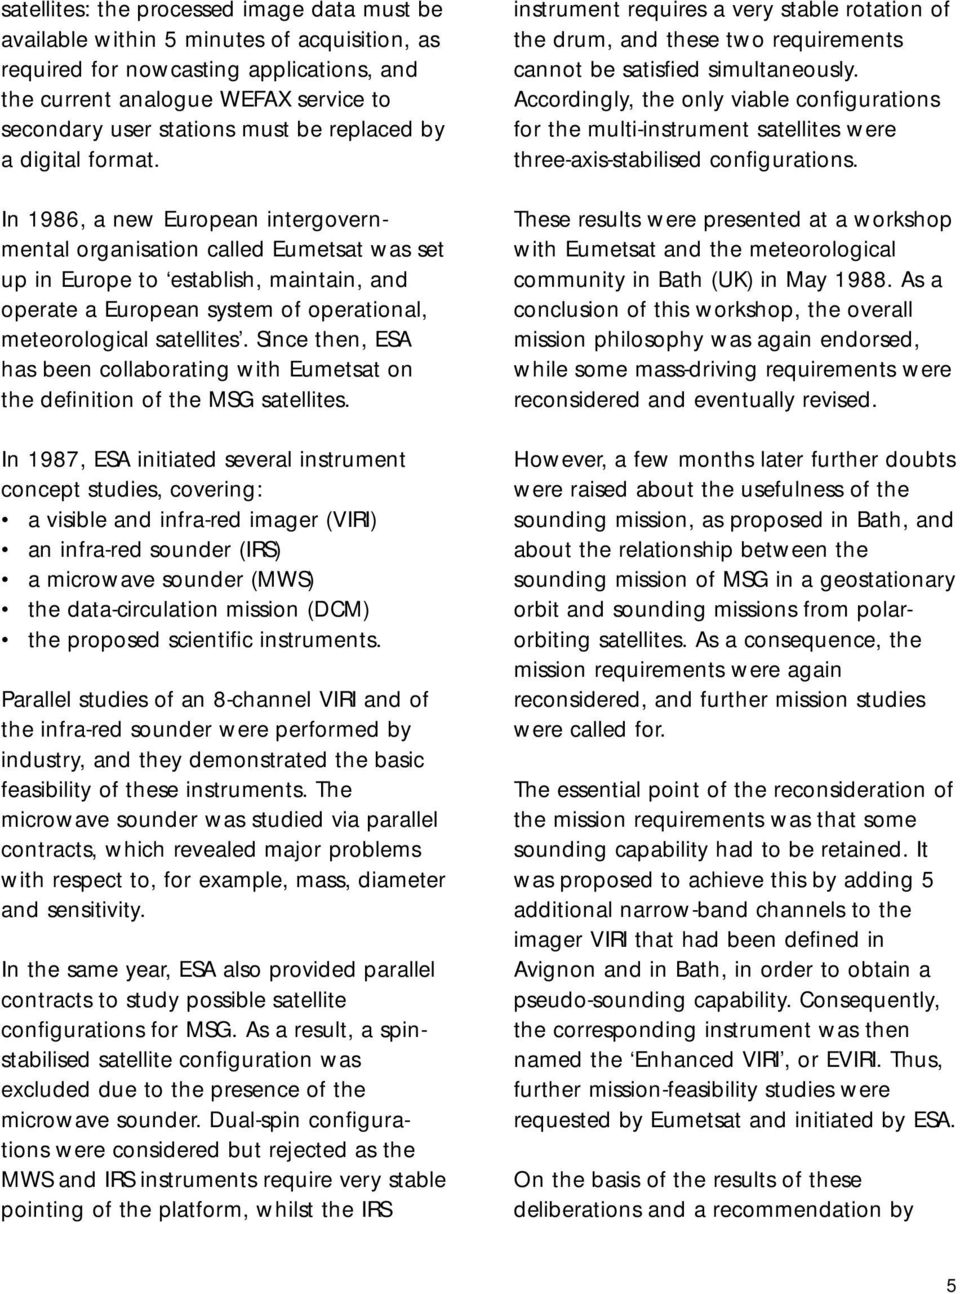 In 1986, a new European intergovernmental organisation called Eumetsat was set up in Europe to establish, maintain, and operate a European system of operational, meteorological satellites.